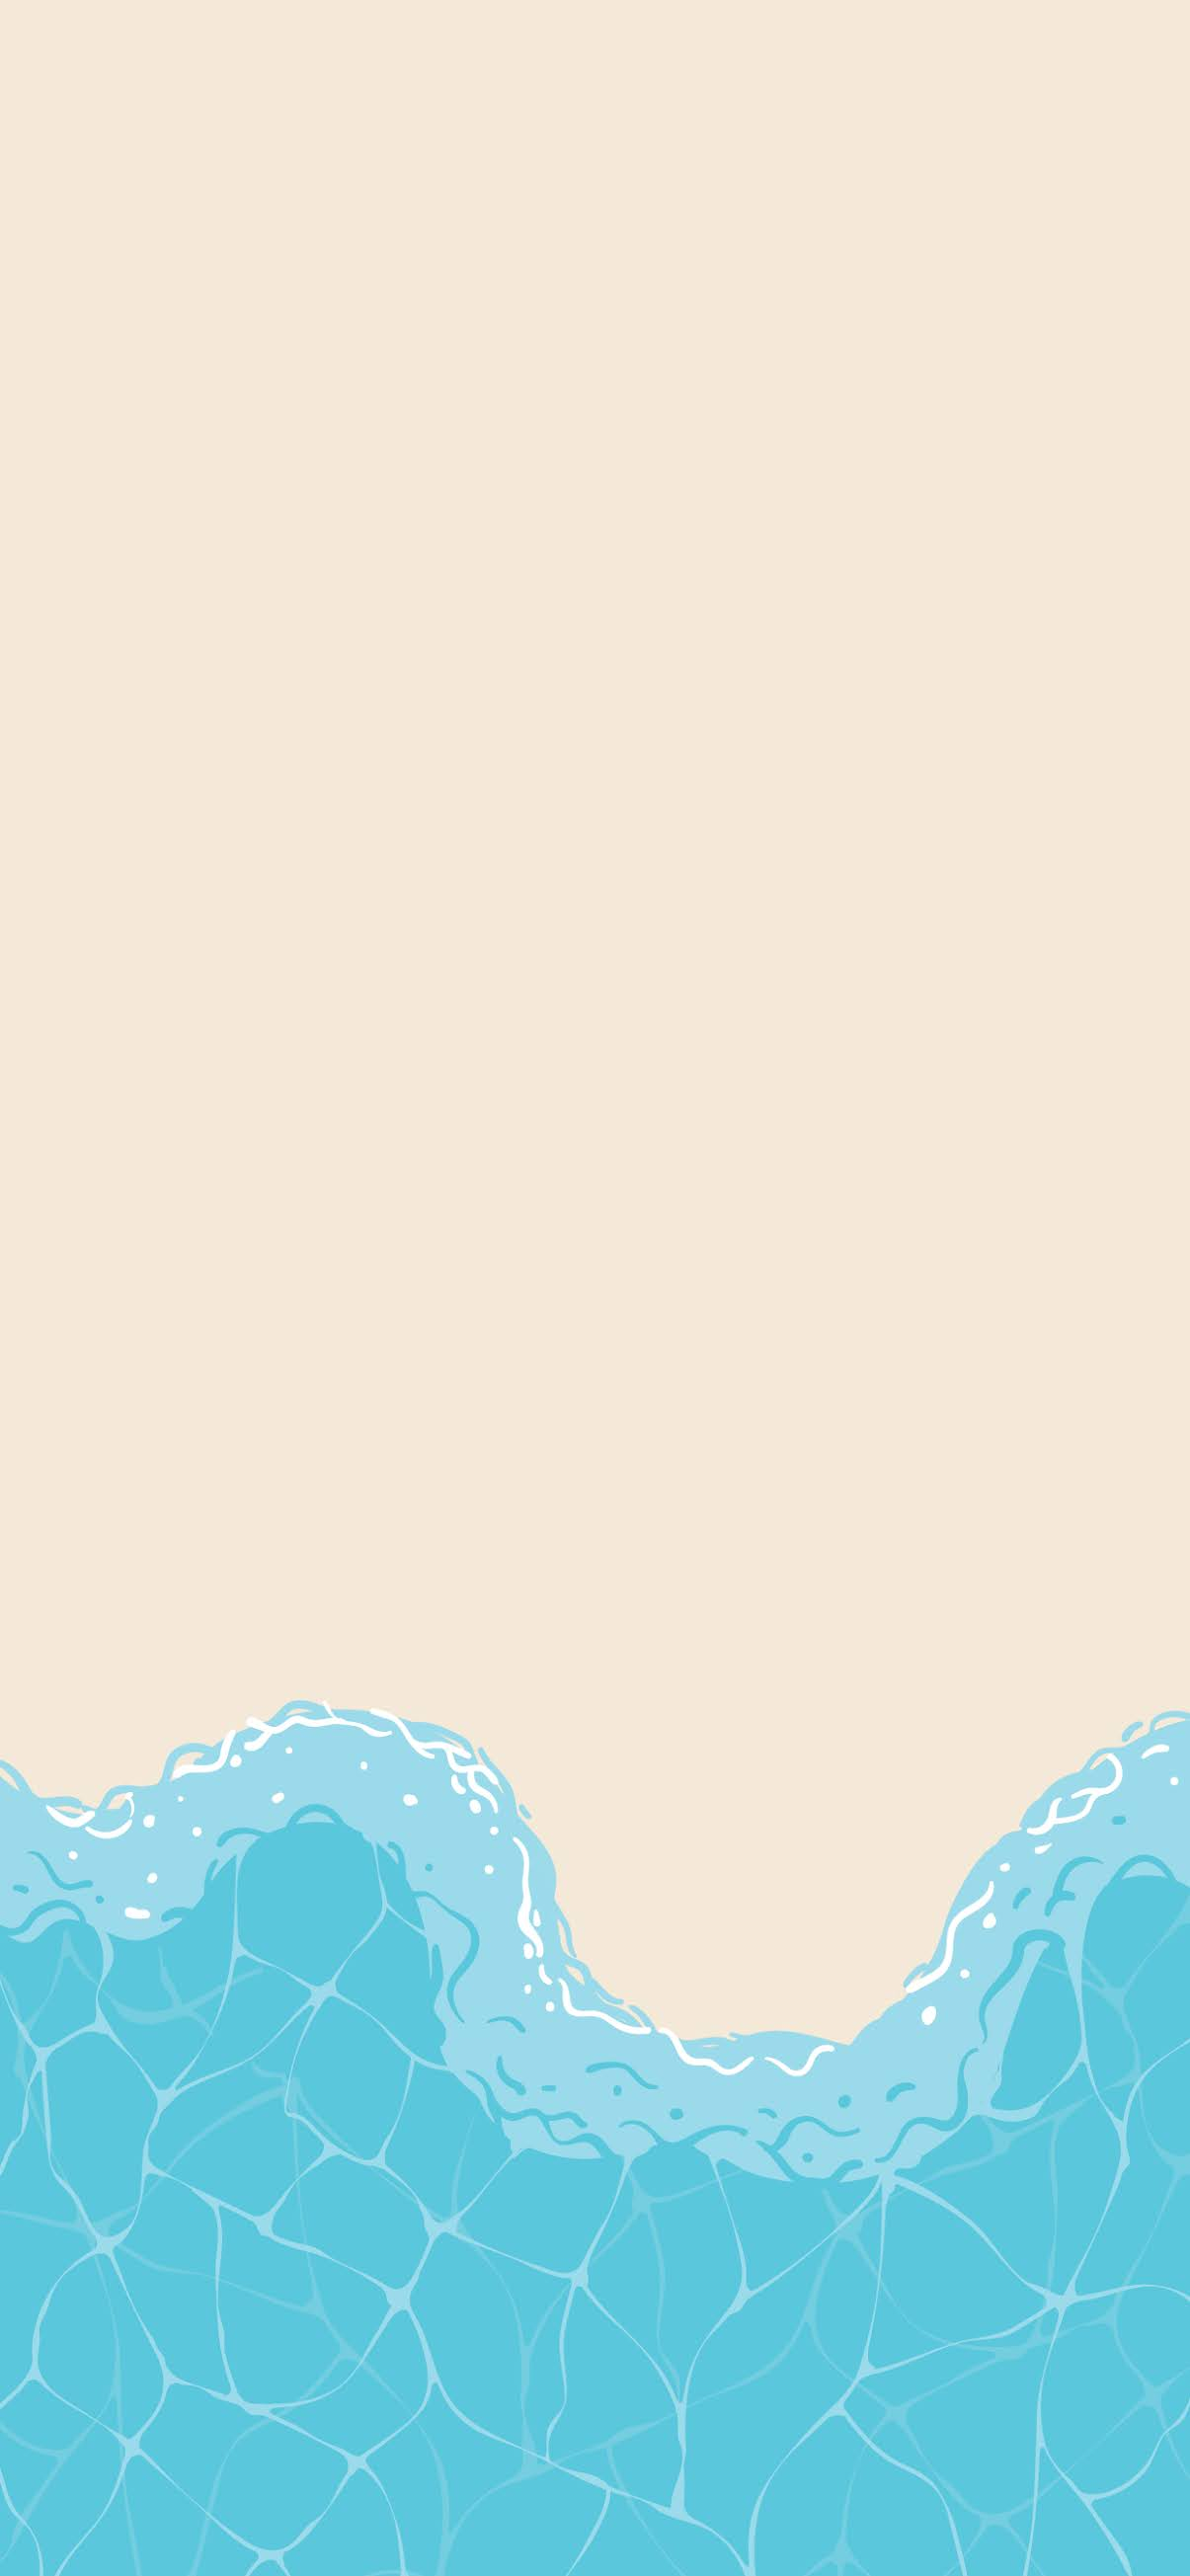 minimalist summer beach hd background simple